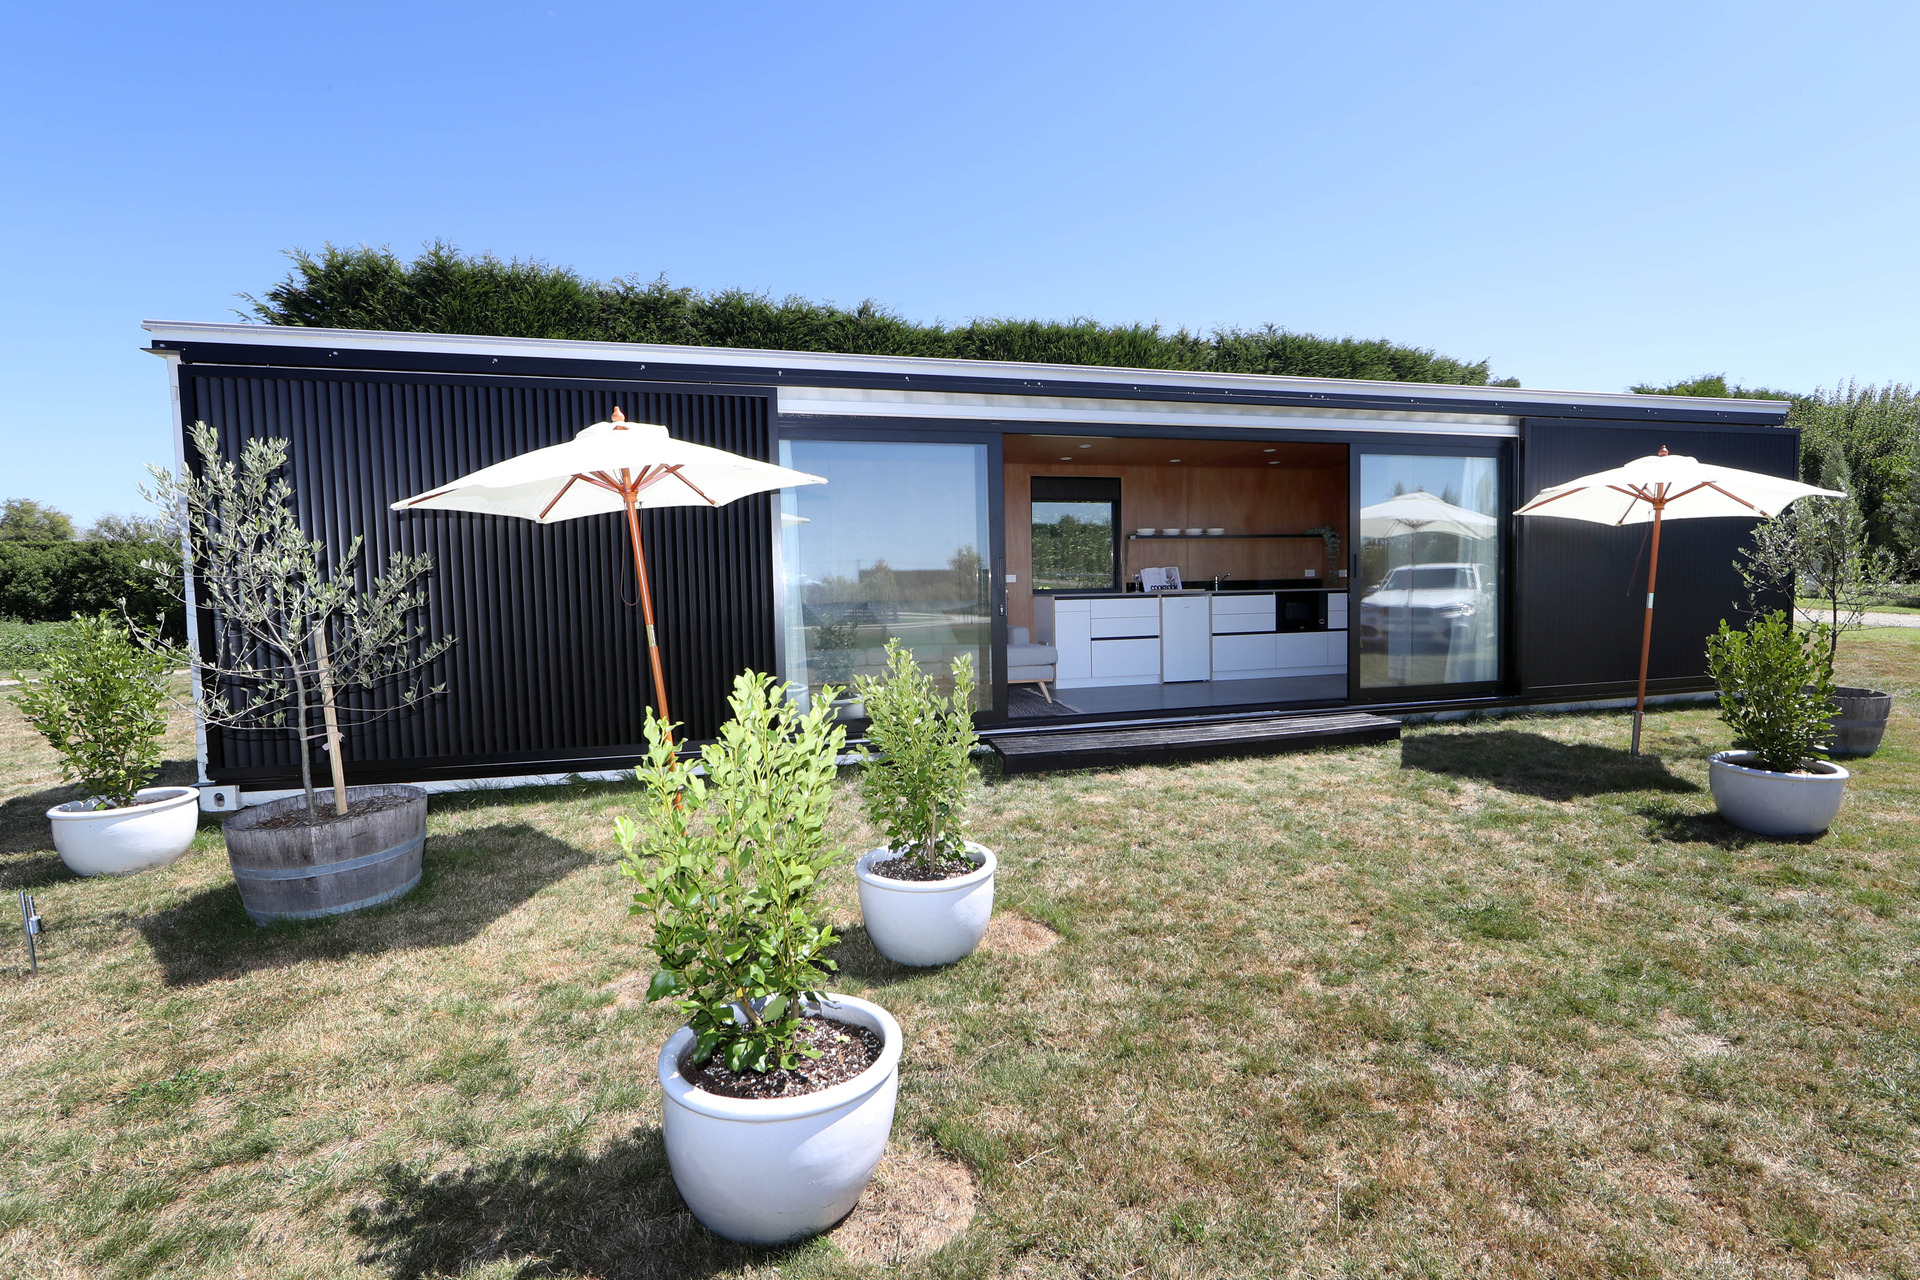 Tiny home makes thousands for cancer charity